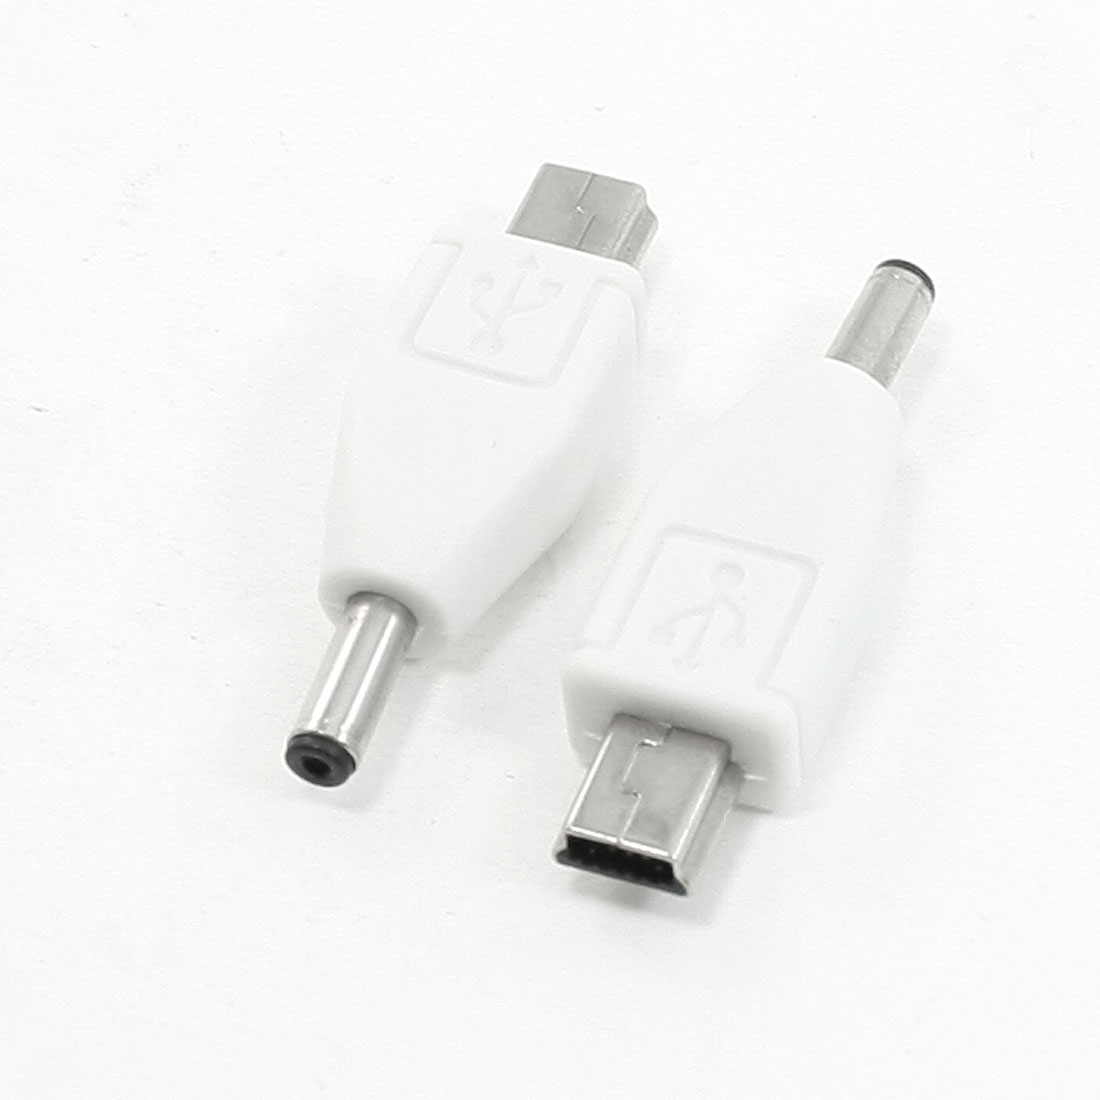 2Pcs B Type Mini USB Male to DC 3.5mm Male Charger Adapter Connector